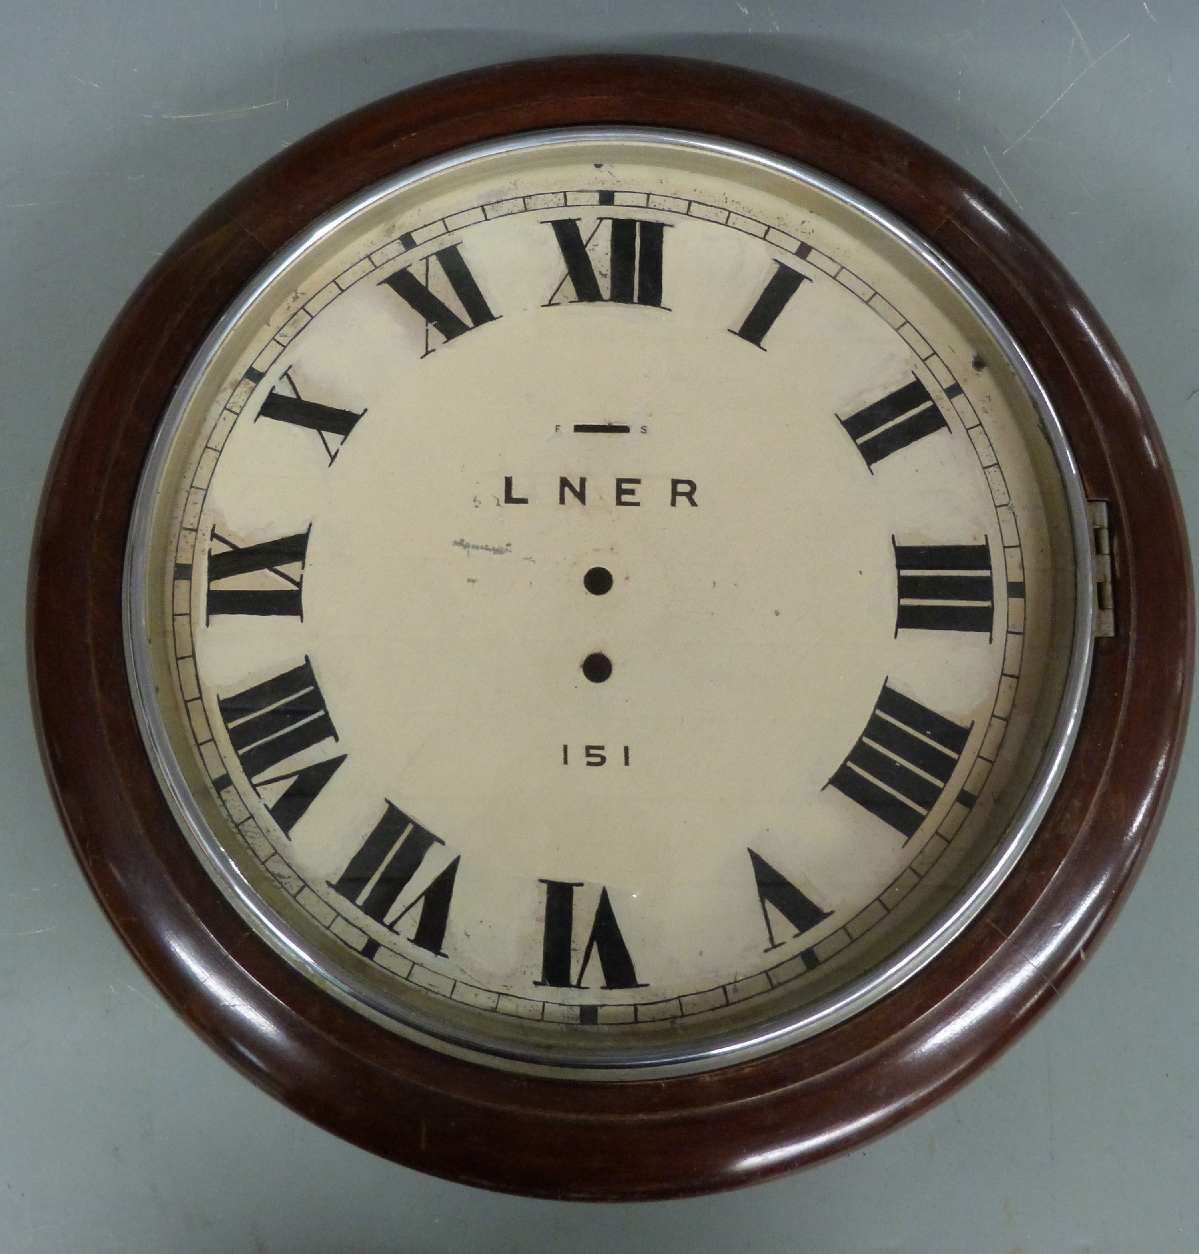 Lot 30 - LNER dial wallclock case and dial with LNER 151 to dial, overall diameter 40cm, together with a